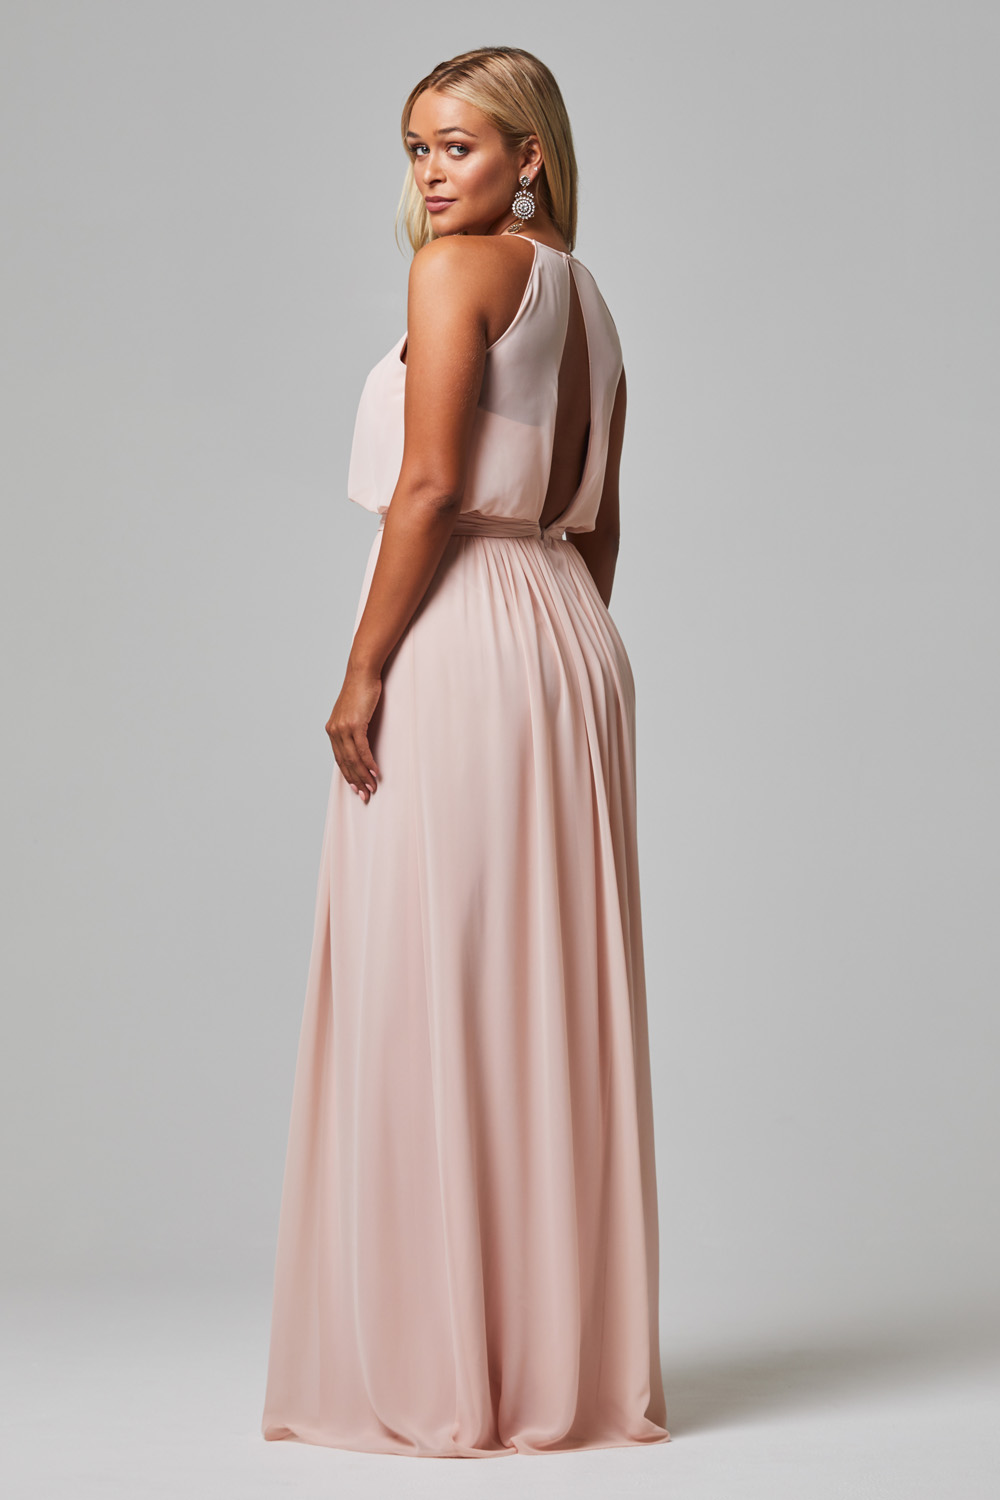 TO822 SYLVIA PINK BACK